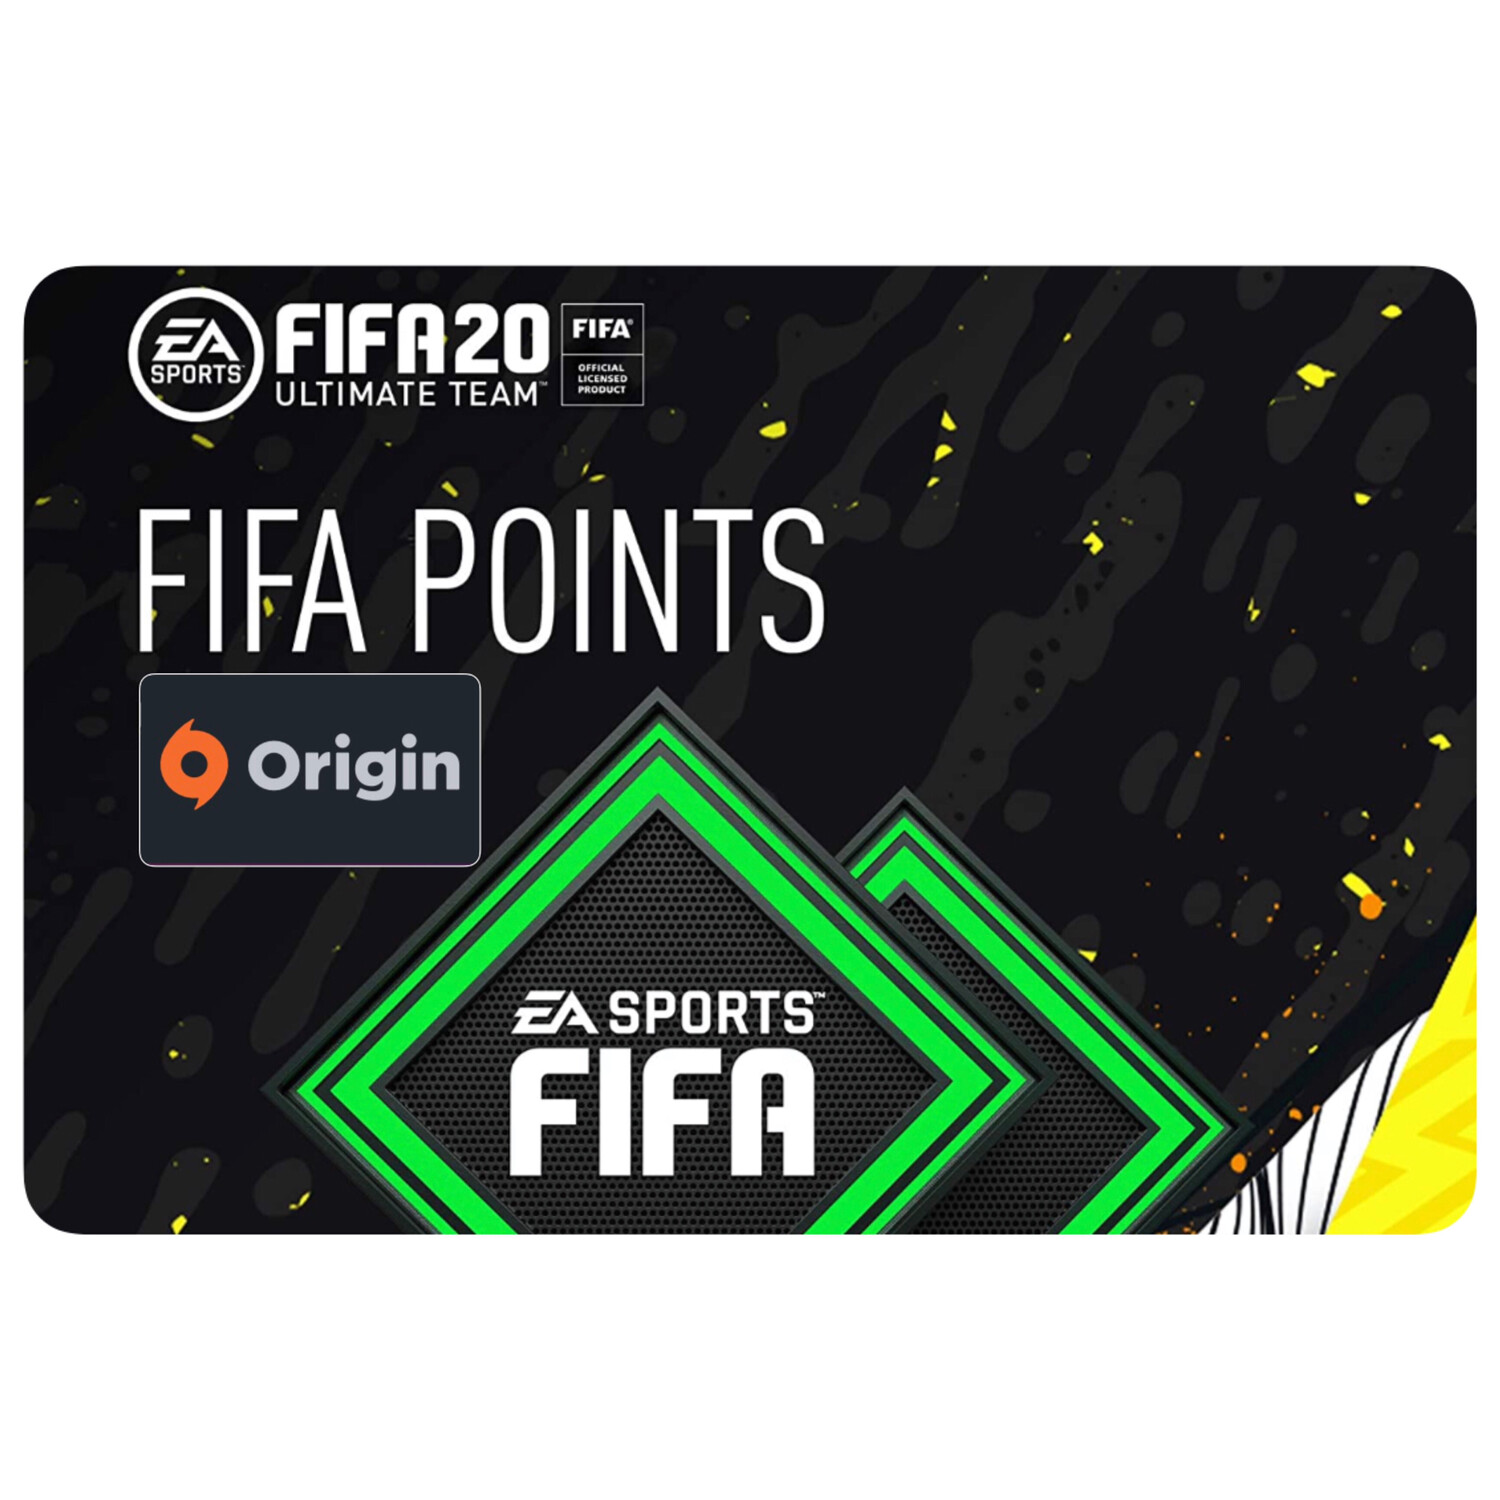 FIFA 20 FUT Points Ultimate Team for PC Origin